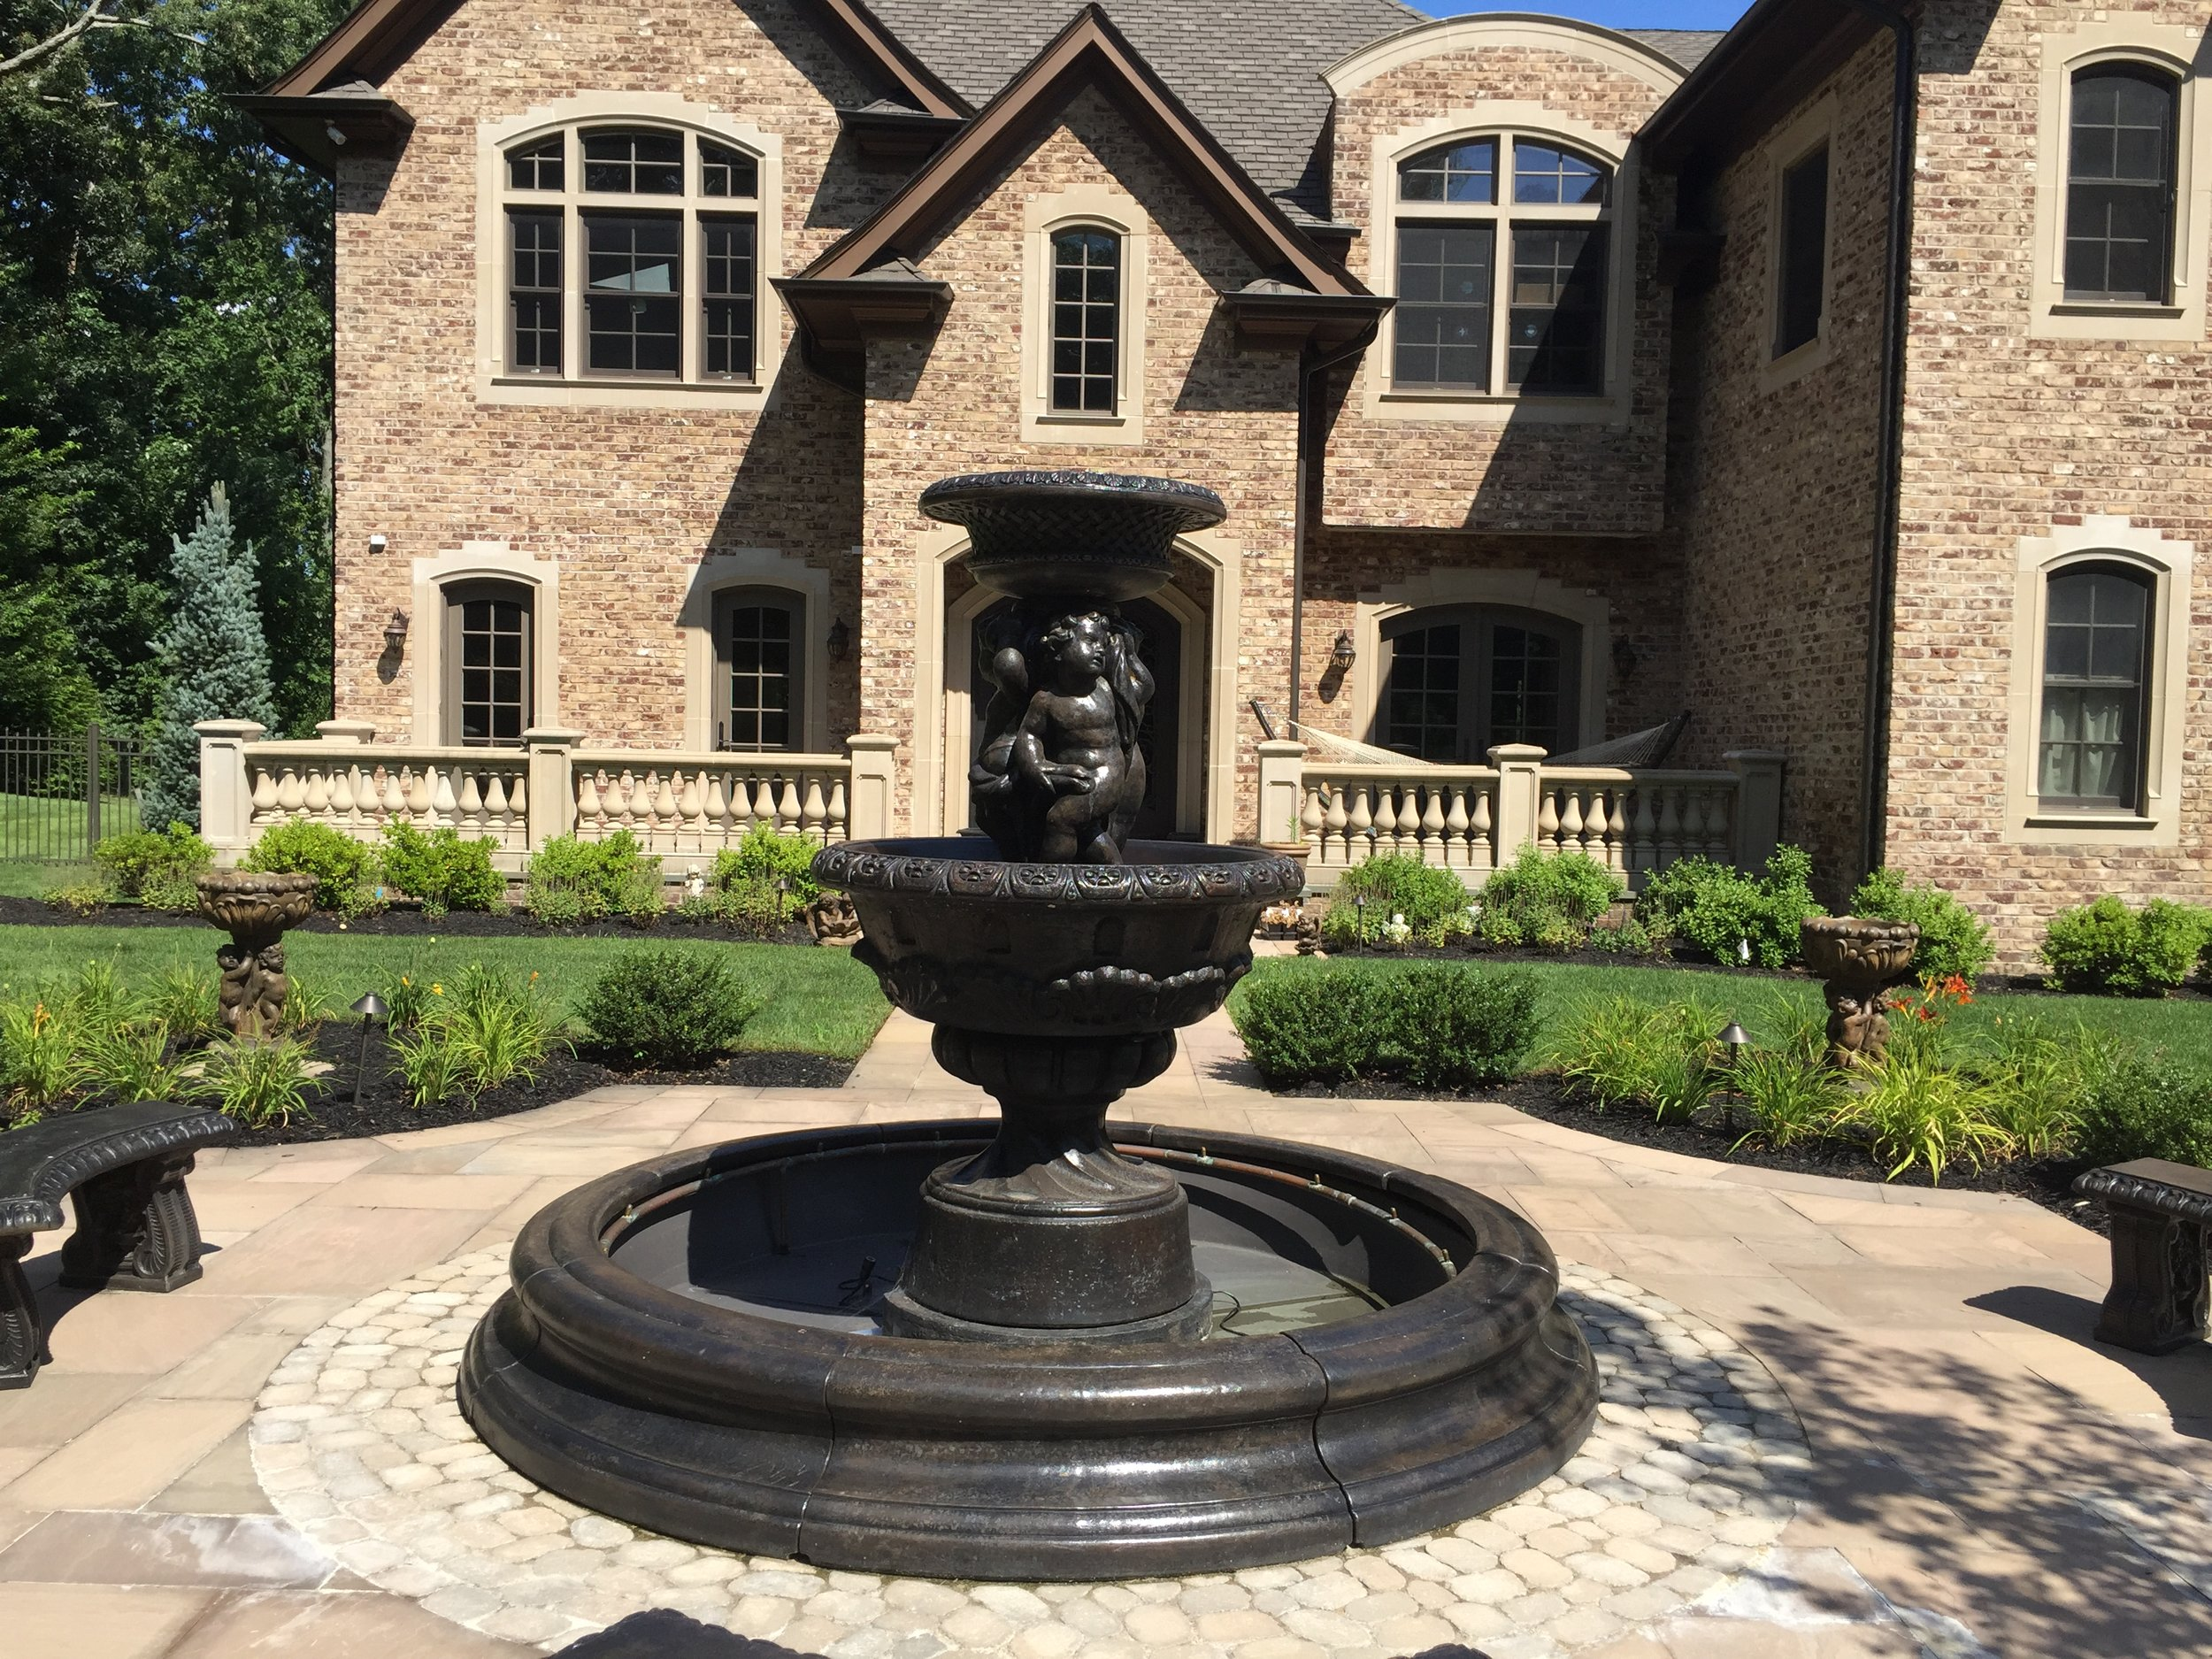 Professional water fountain design company in Long Island, NY